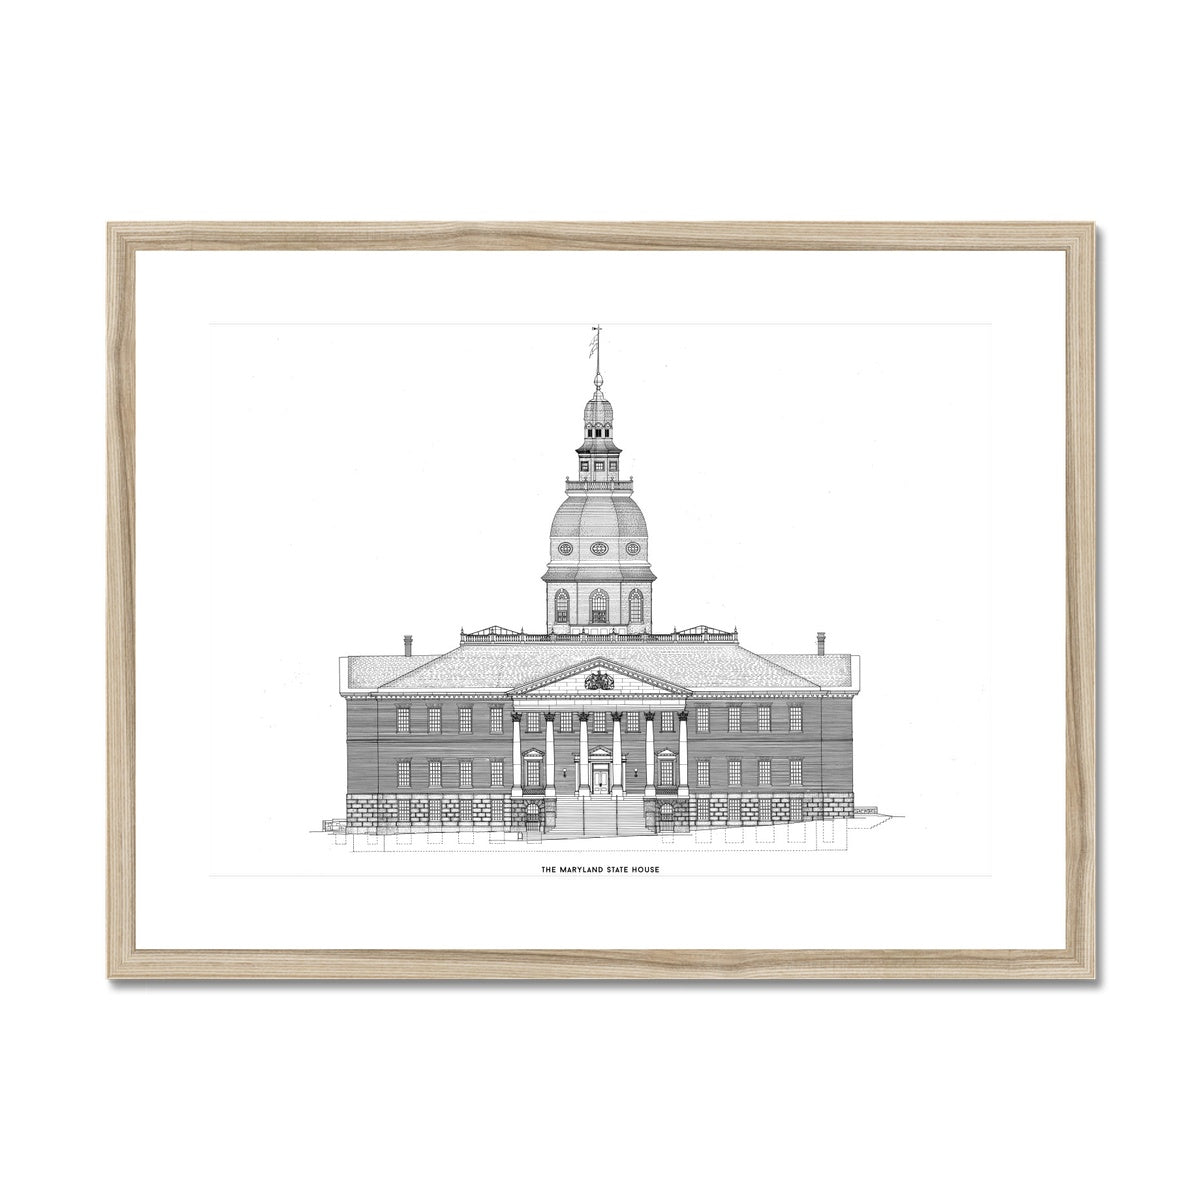 The Maryland State House - Northwest Elevation - White -  Framed & Mounted Print